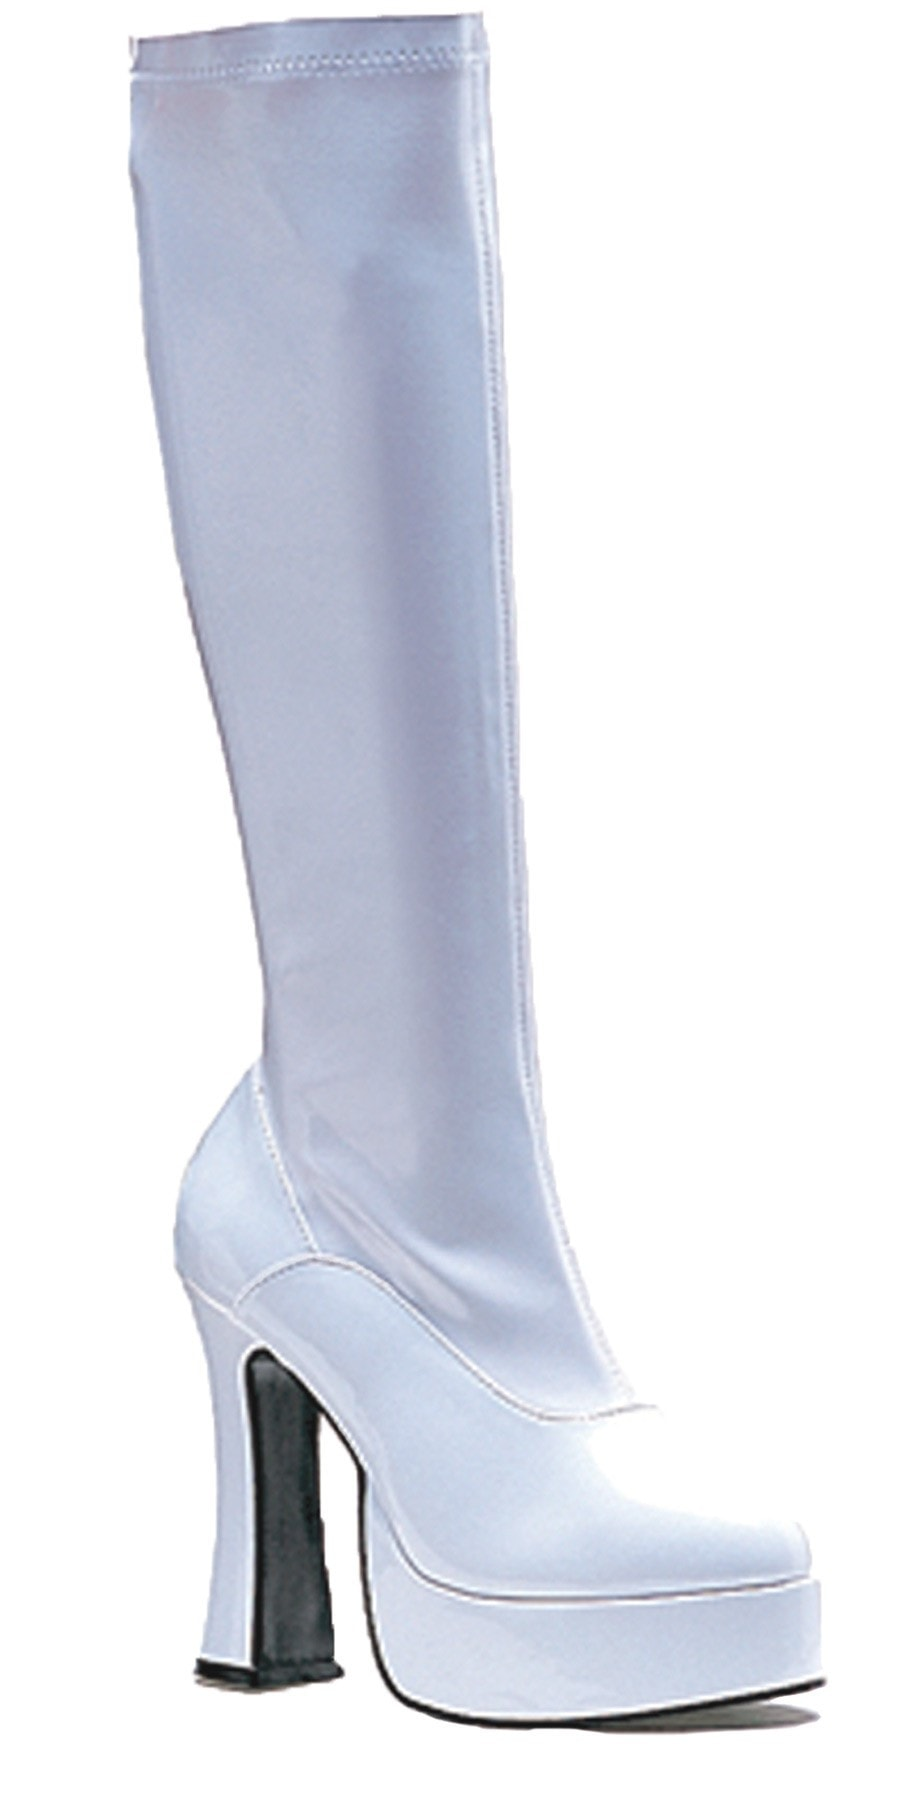 Morris Boot Chacha White Size 12 - MaxWigs